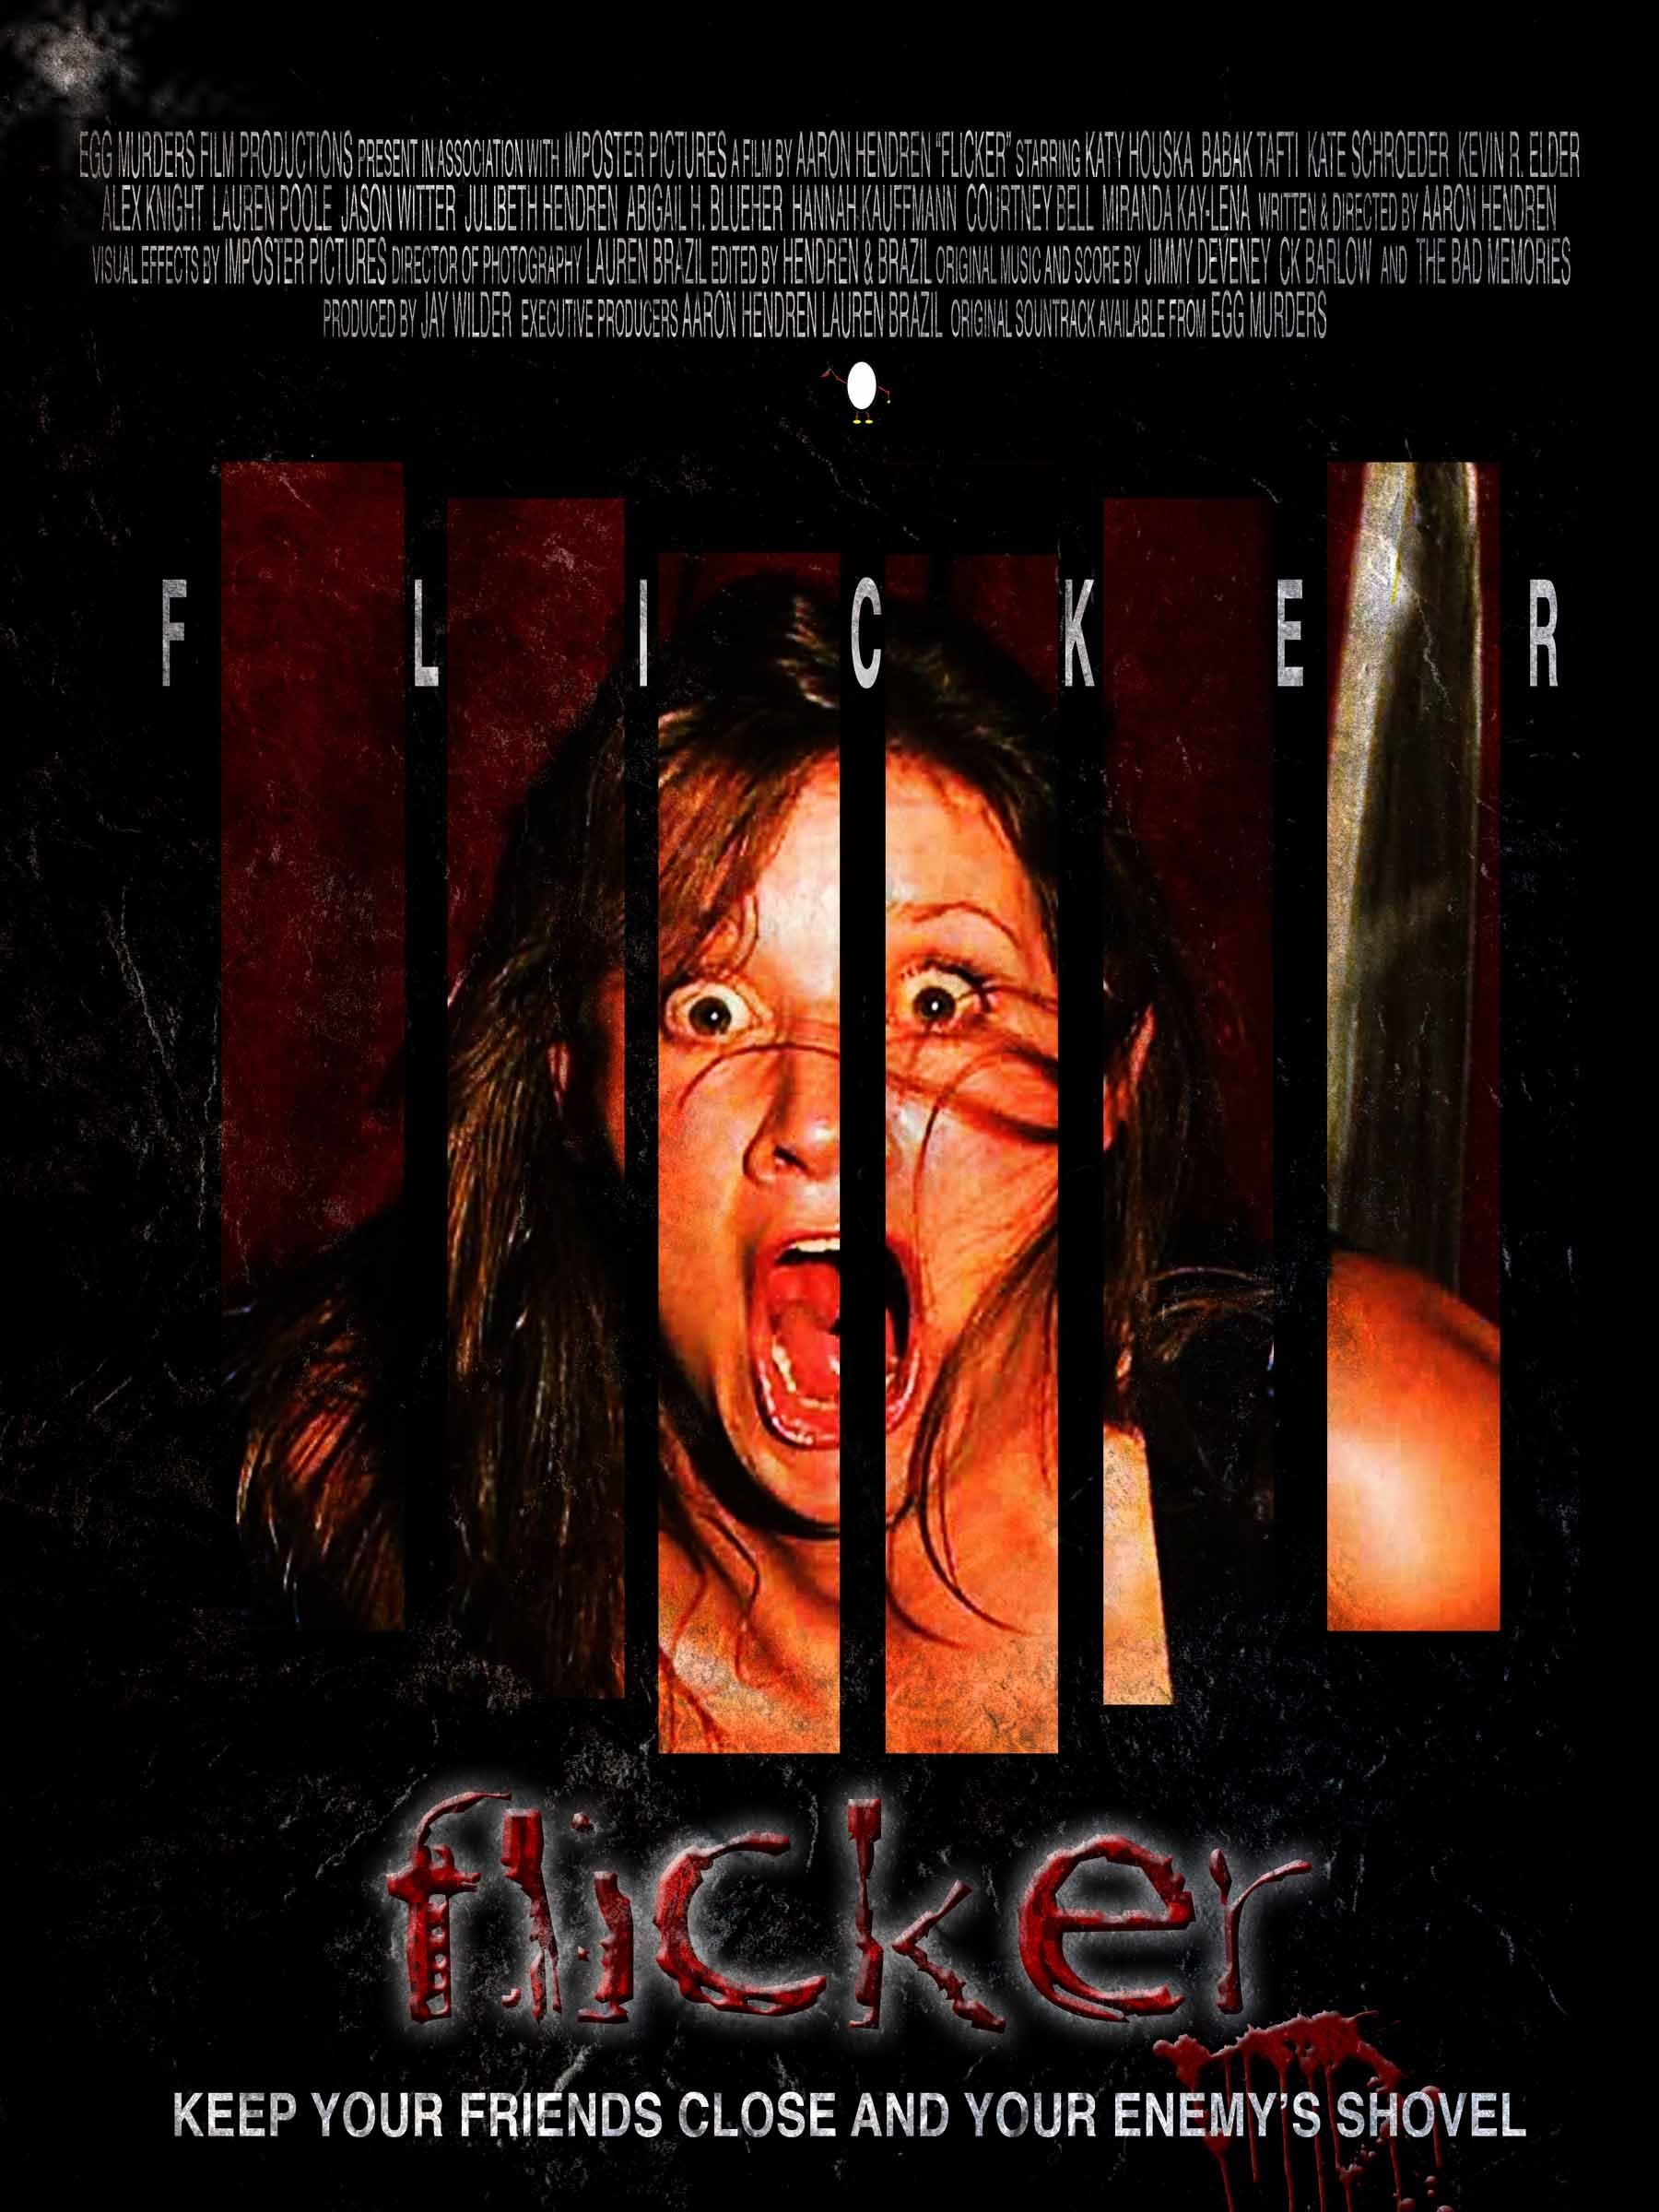 Flicker: a short psycho-thriller